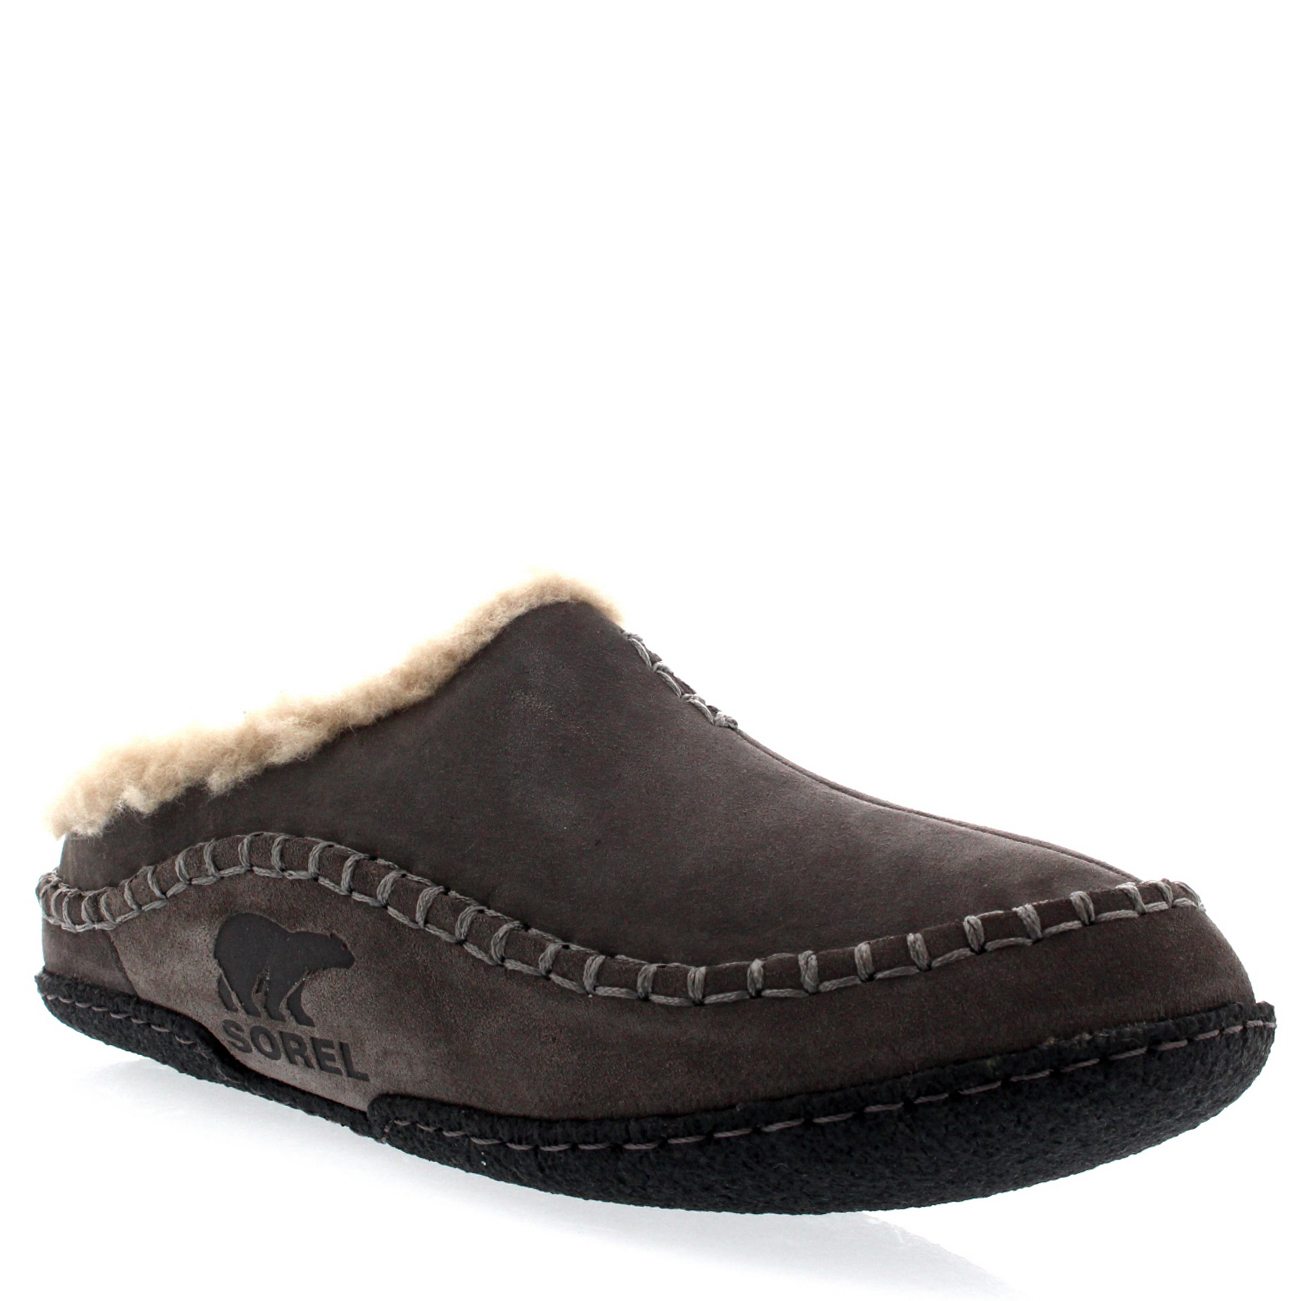 Mens Sorel Falcon Ridge Casual Fur Suede Winter Shoes House Slippers All Sizes | EBay